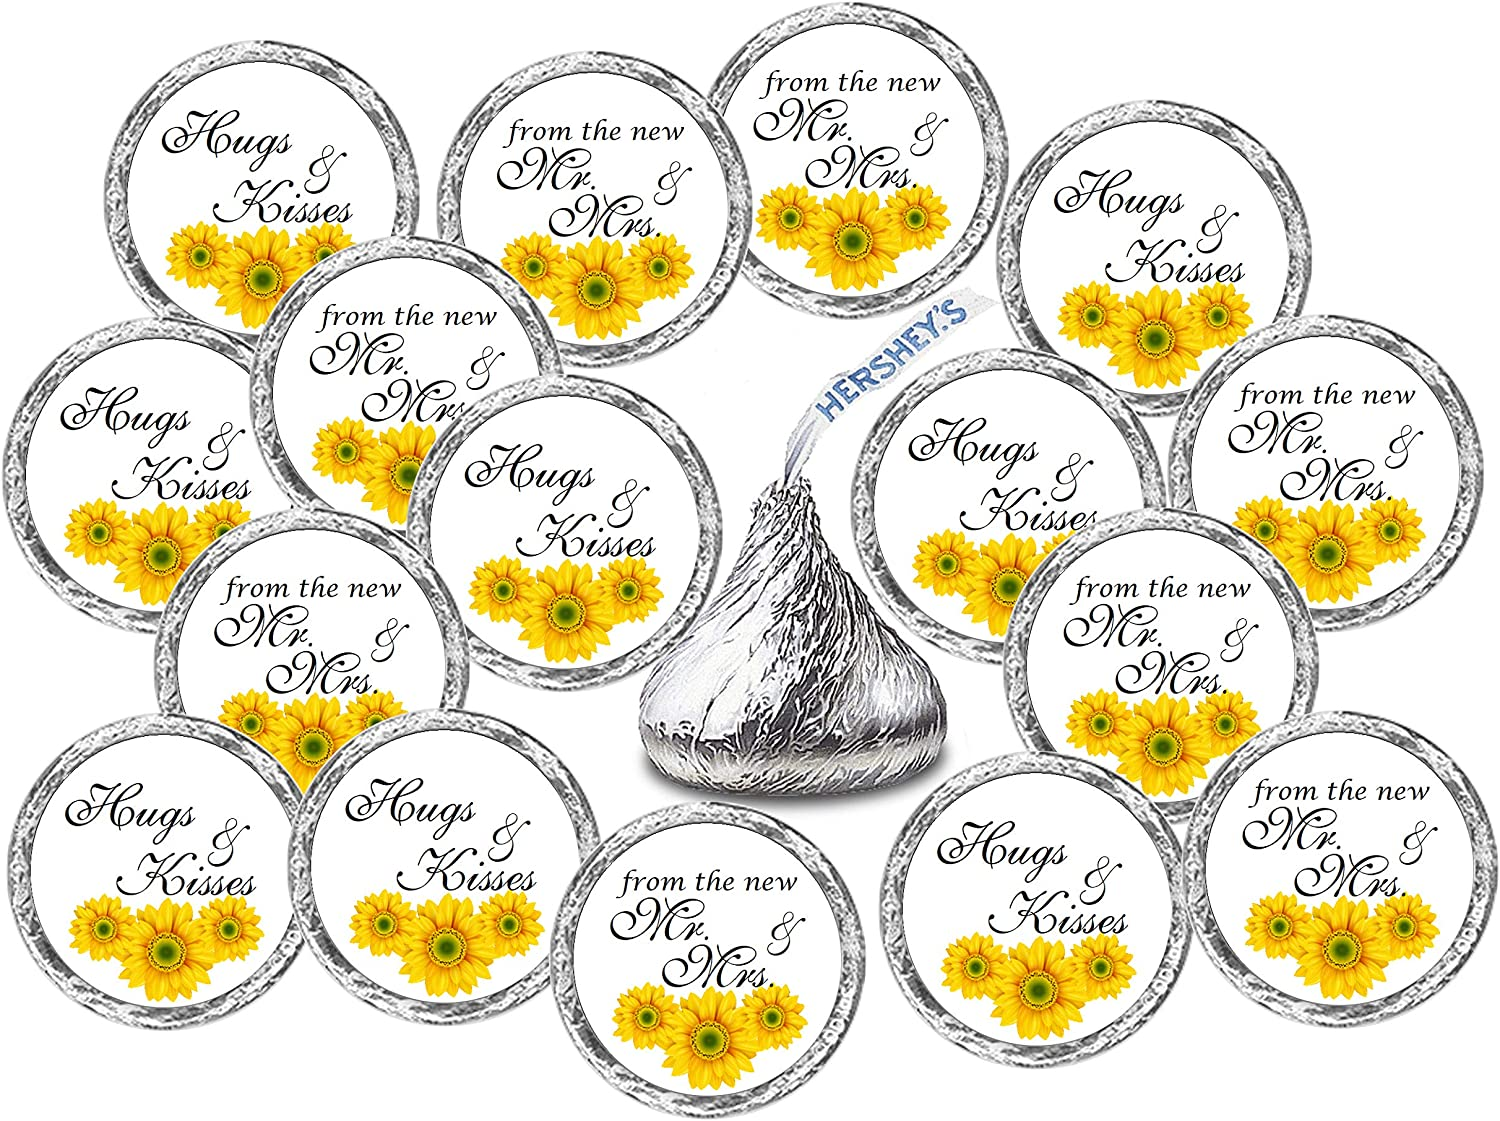 324 Hugs and Kisses from the new Mr /& Mrs Interlocking Orange Hearts Wedding Favors Stickers Labels For Bridal Shower CANDY NOT INCLUDED